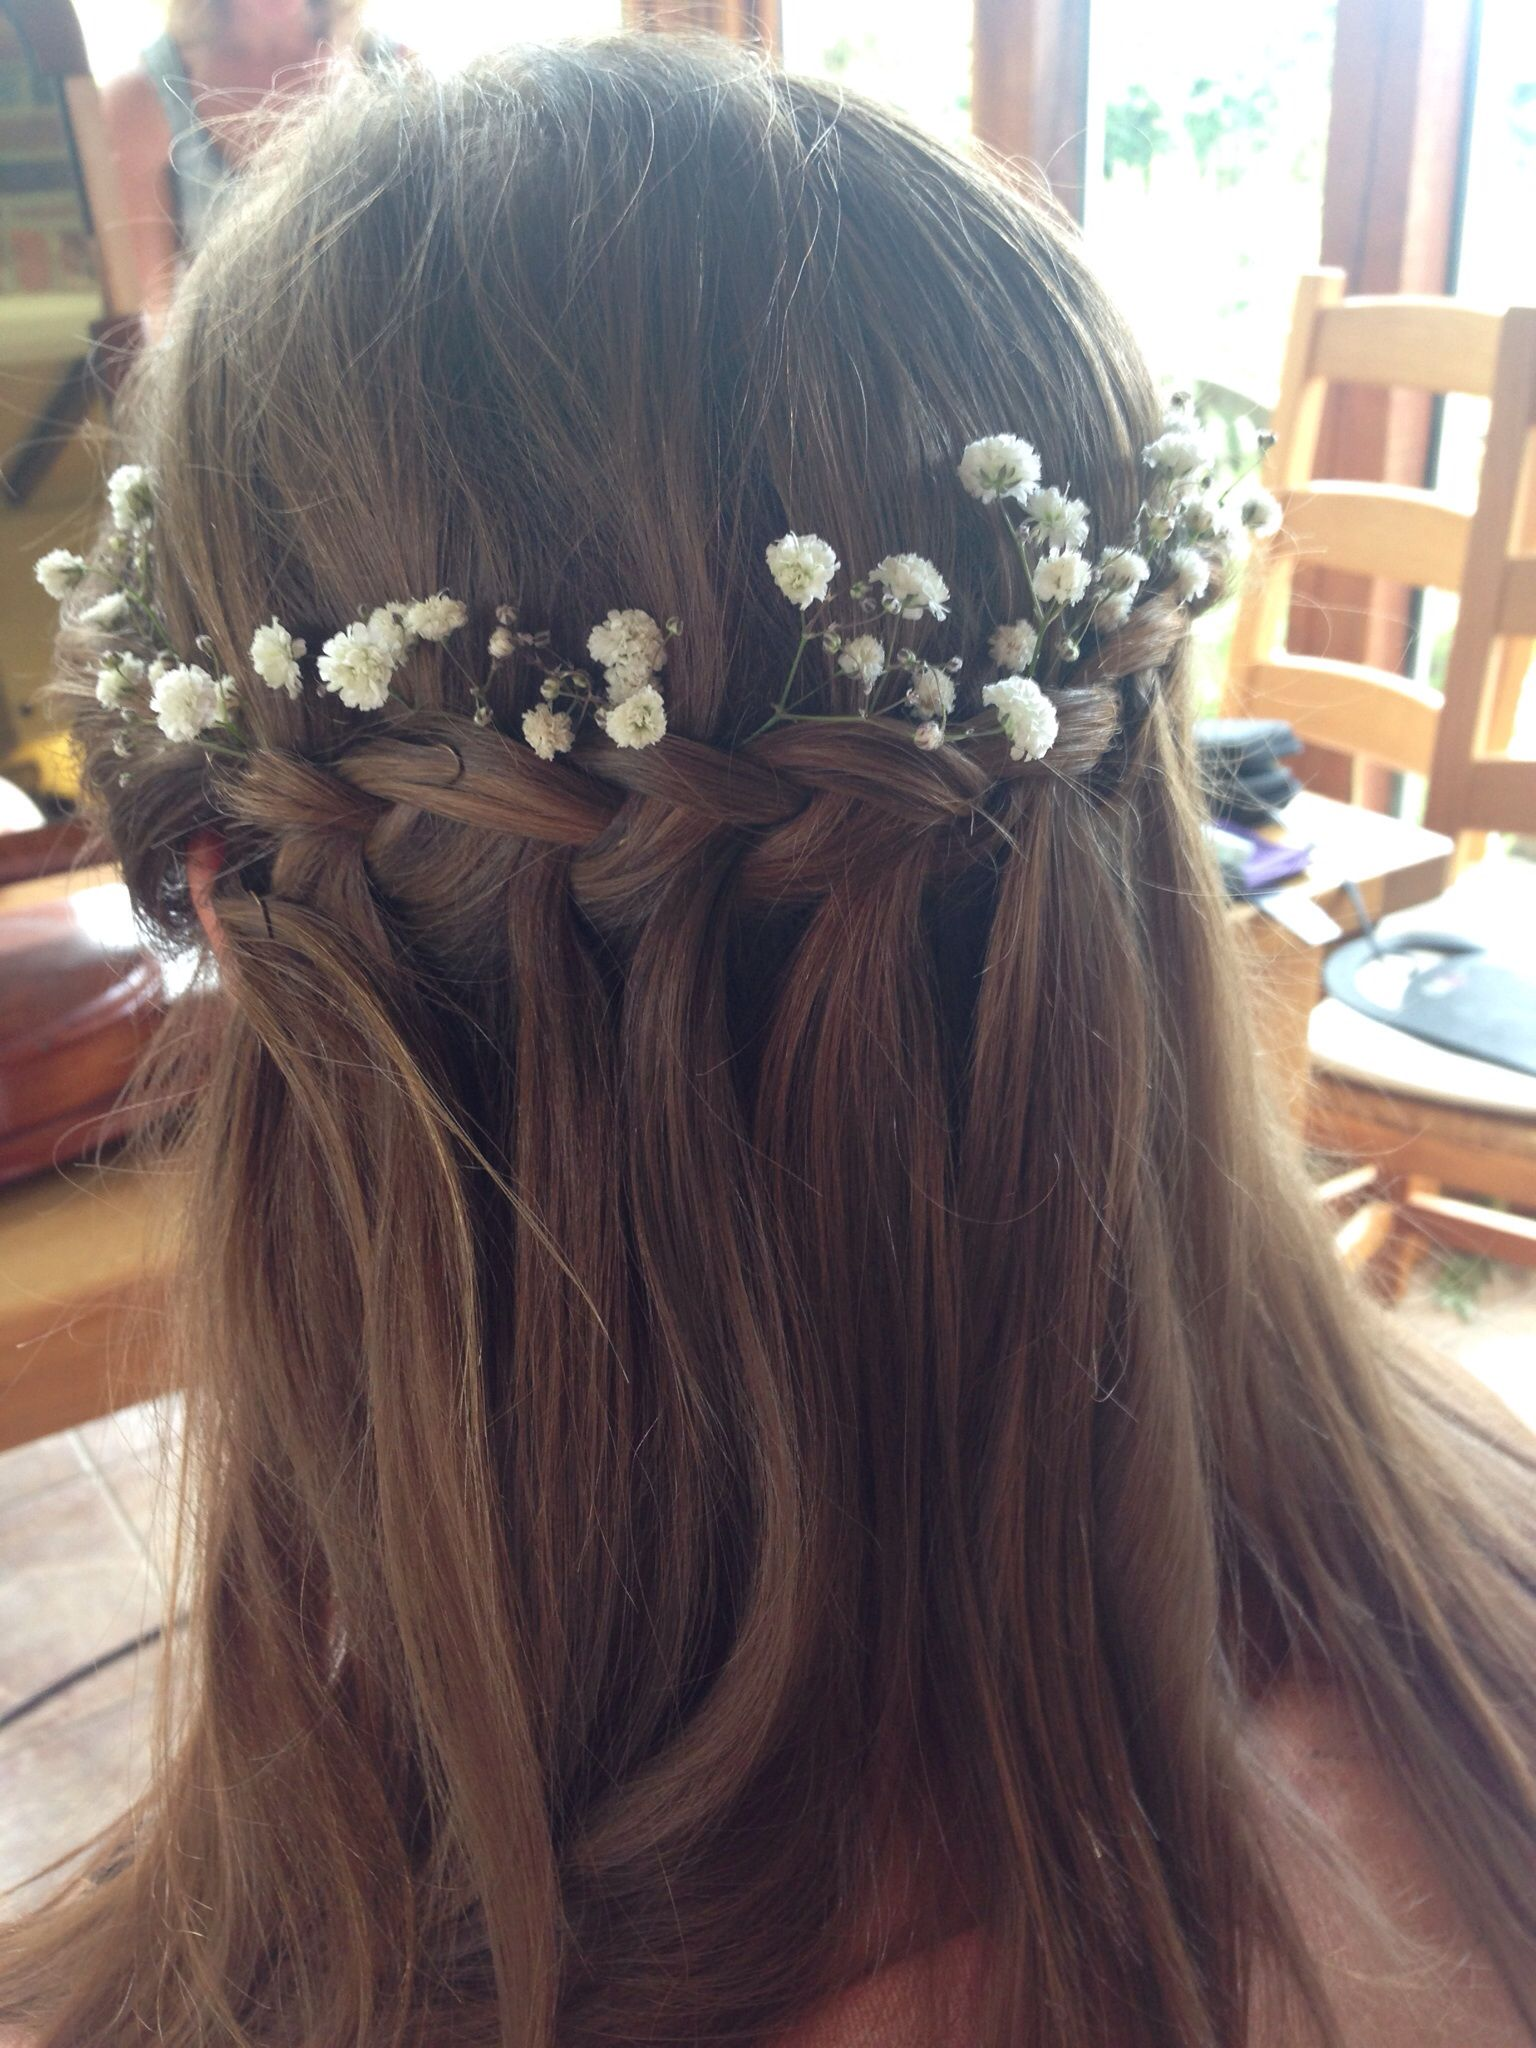 bridesmaid hair with waterfall plait and gypsophila | hair style